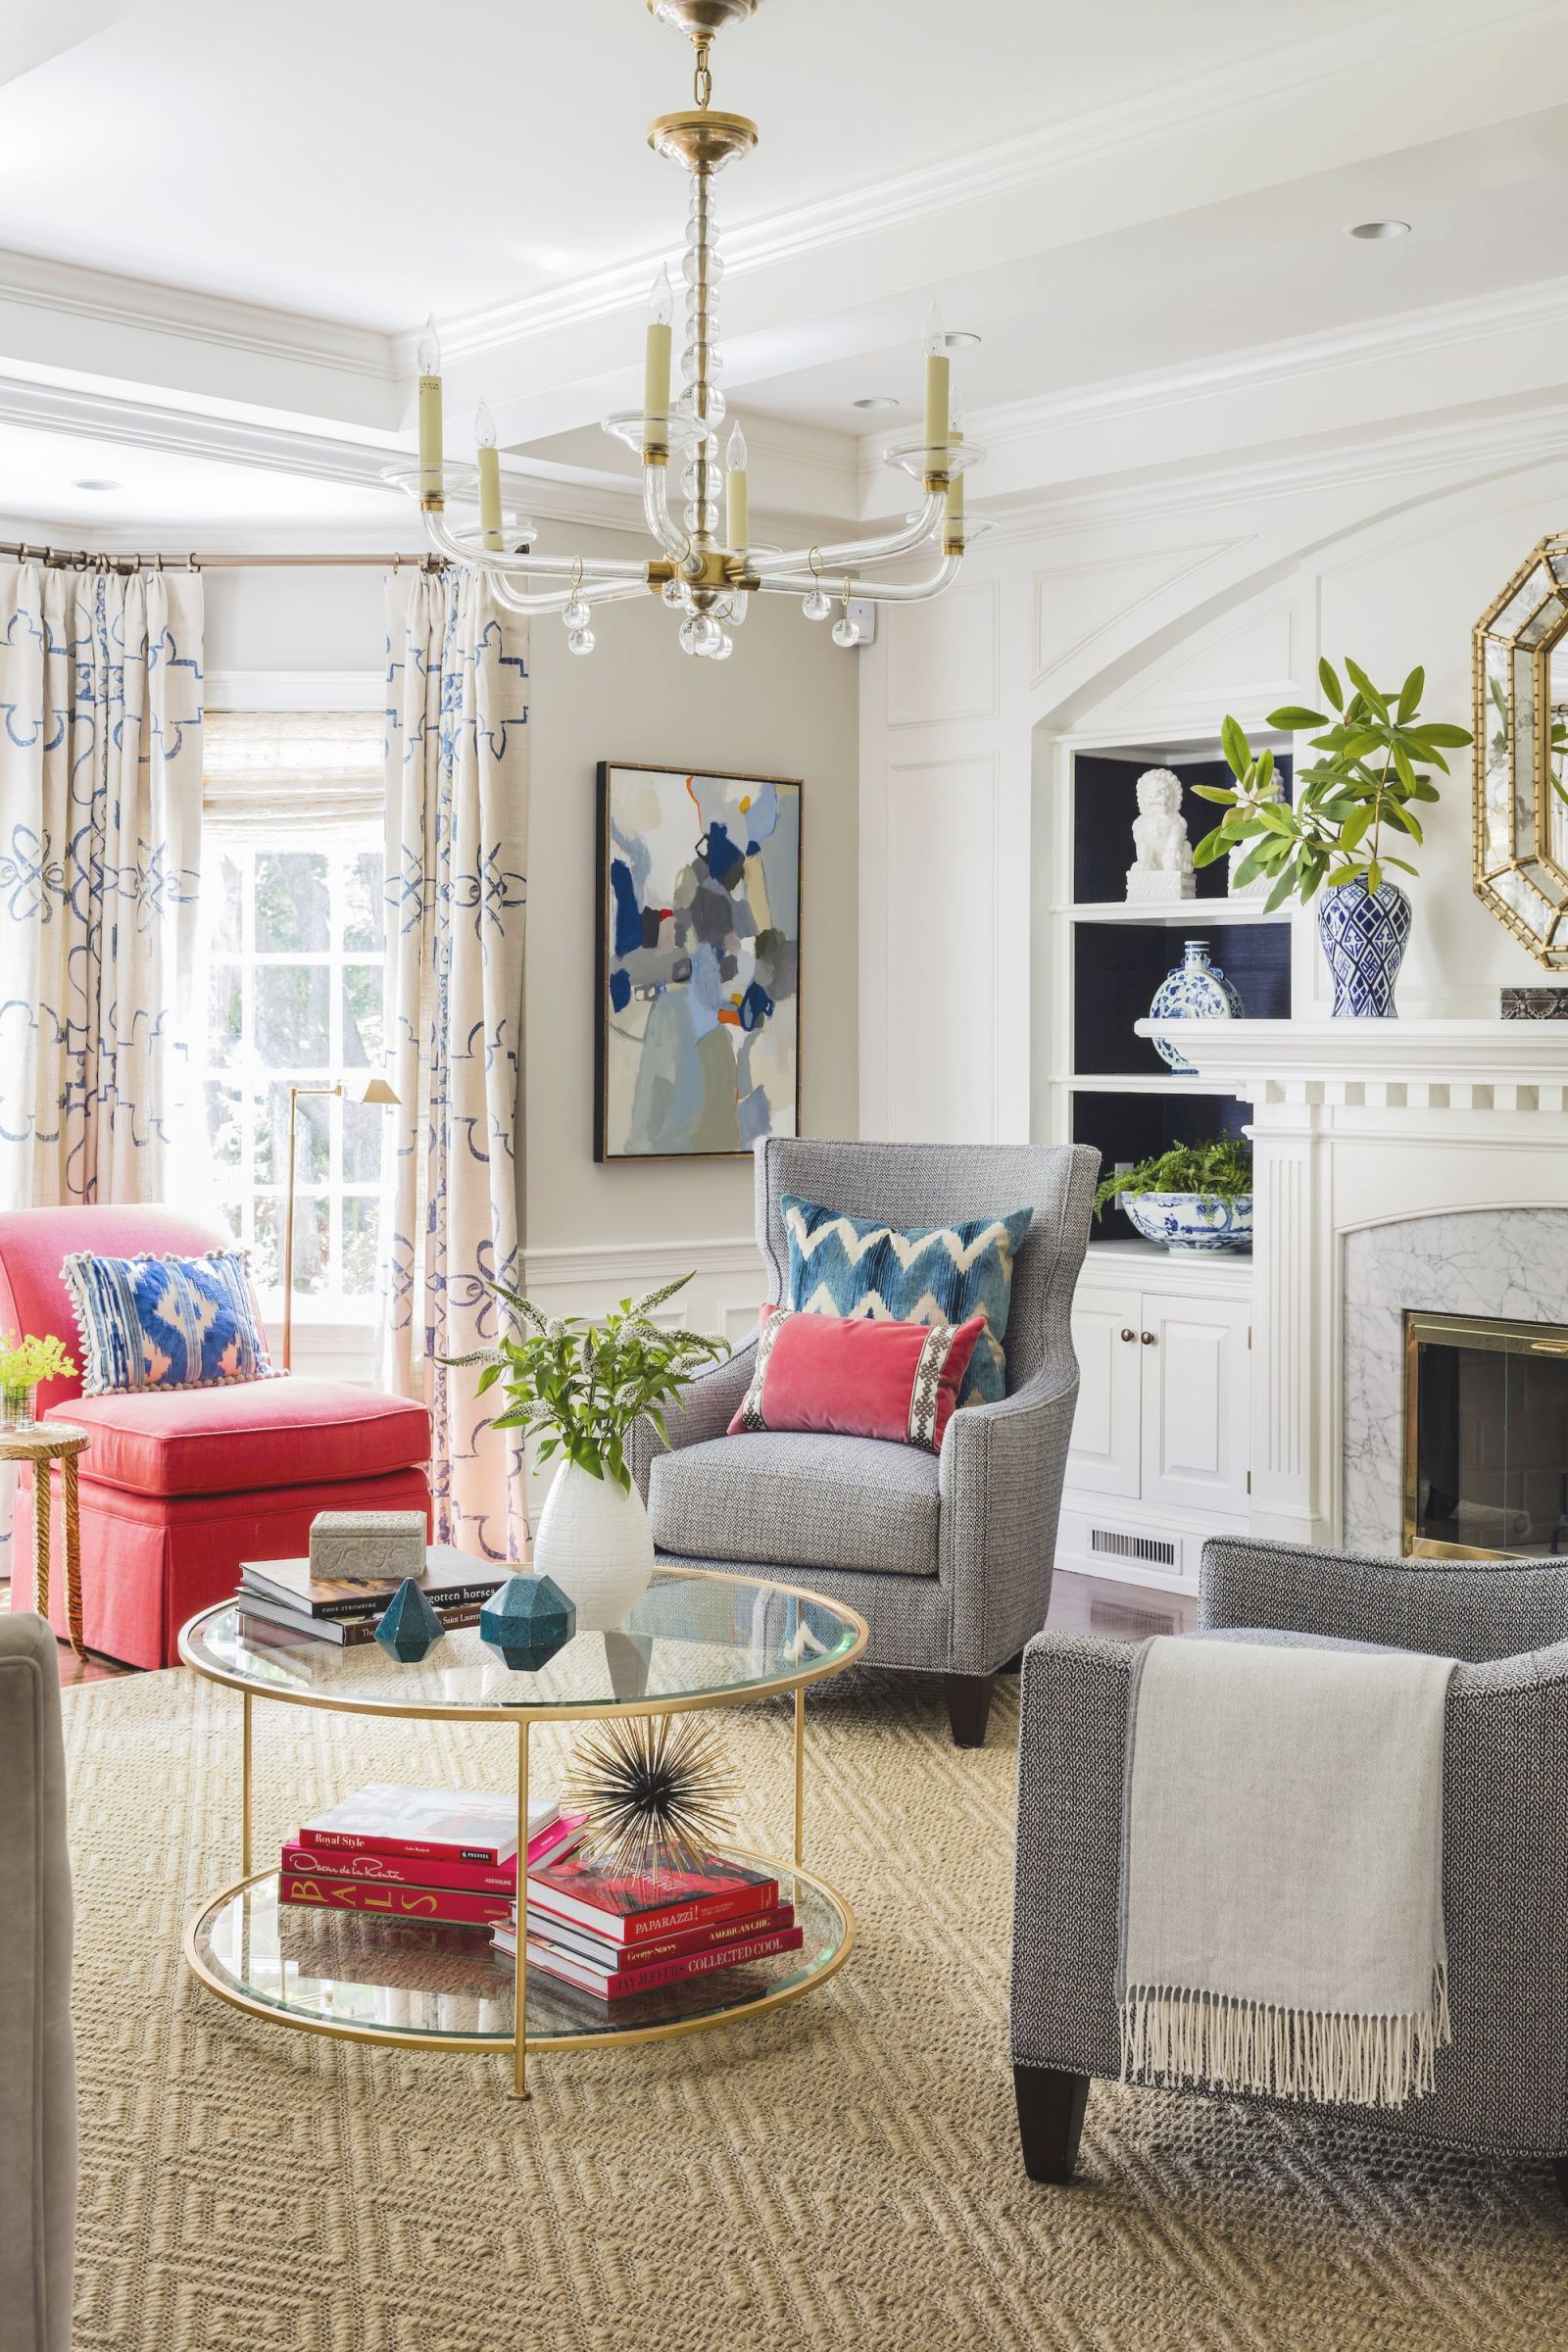 53 Best Living Room Ideas – Stylish Living Room Decorating for Decorative Items For Living Room